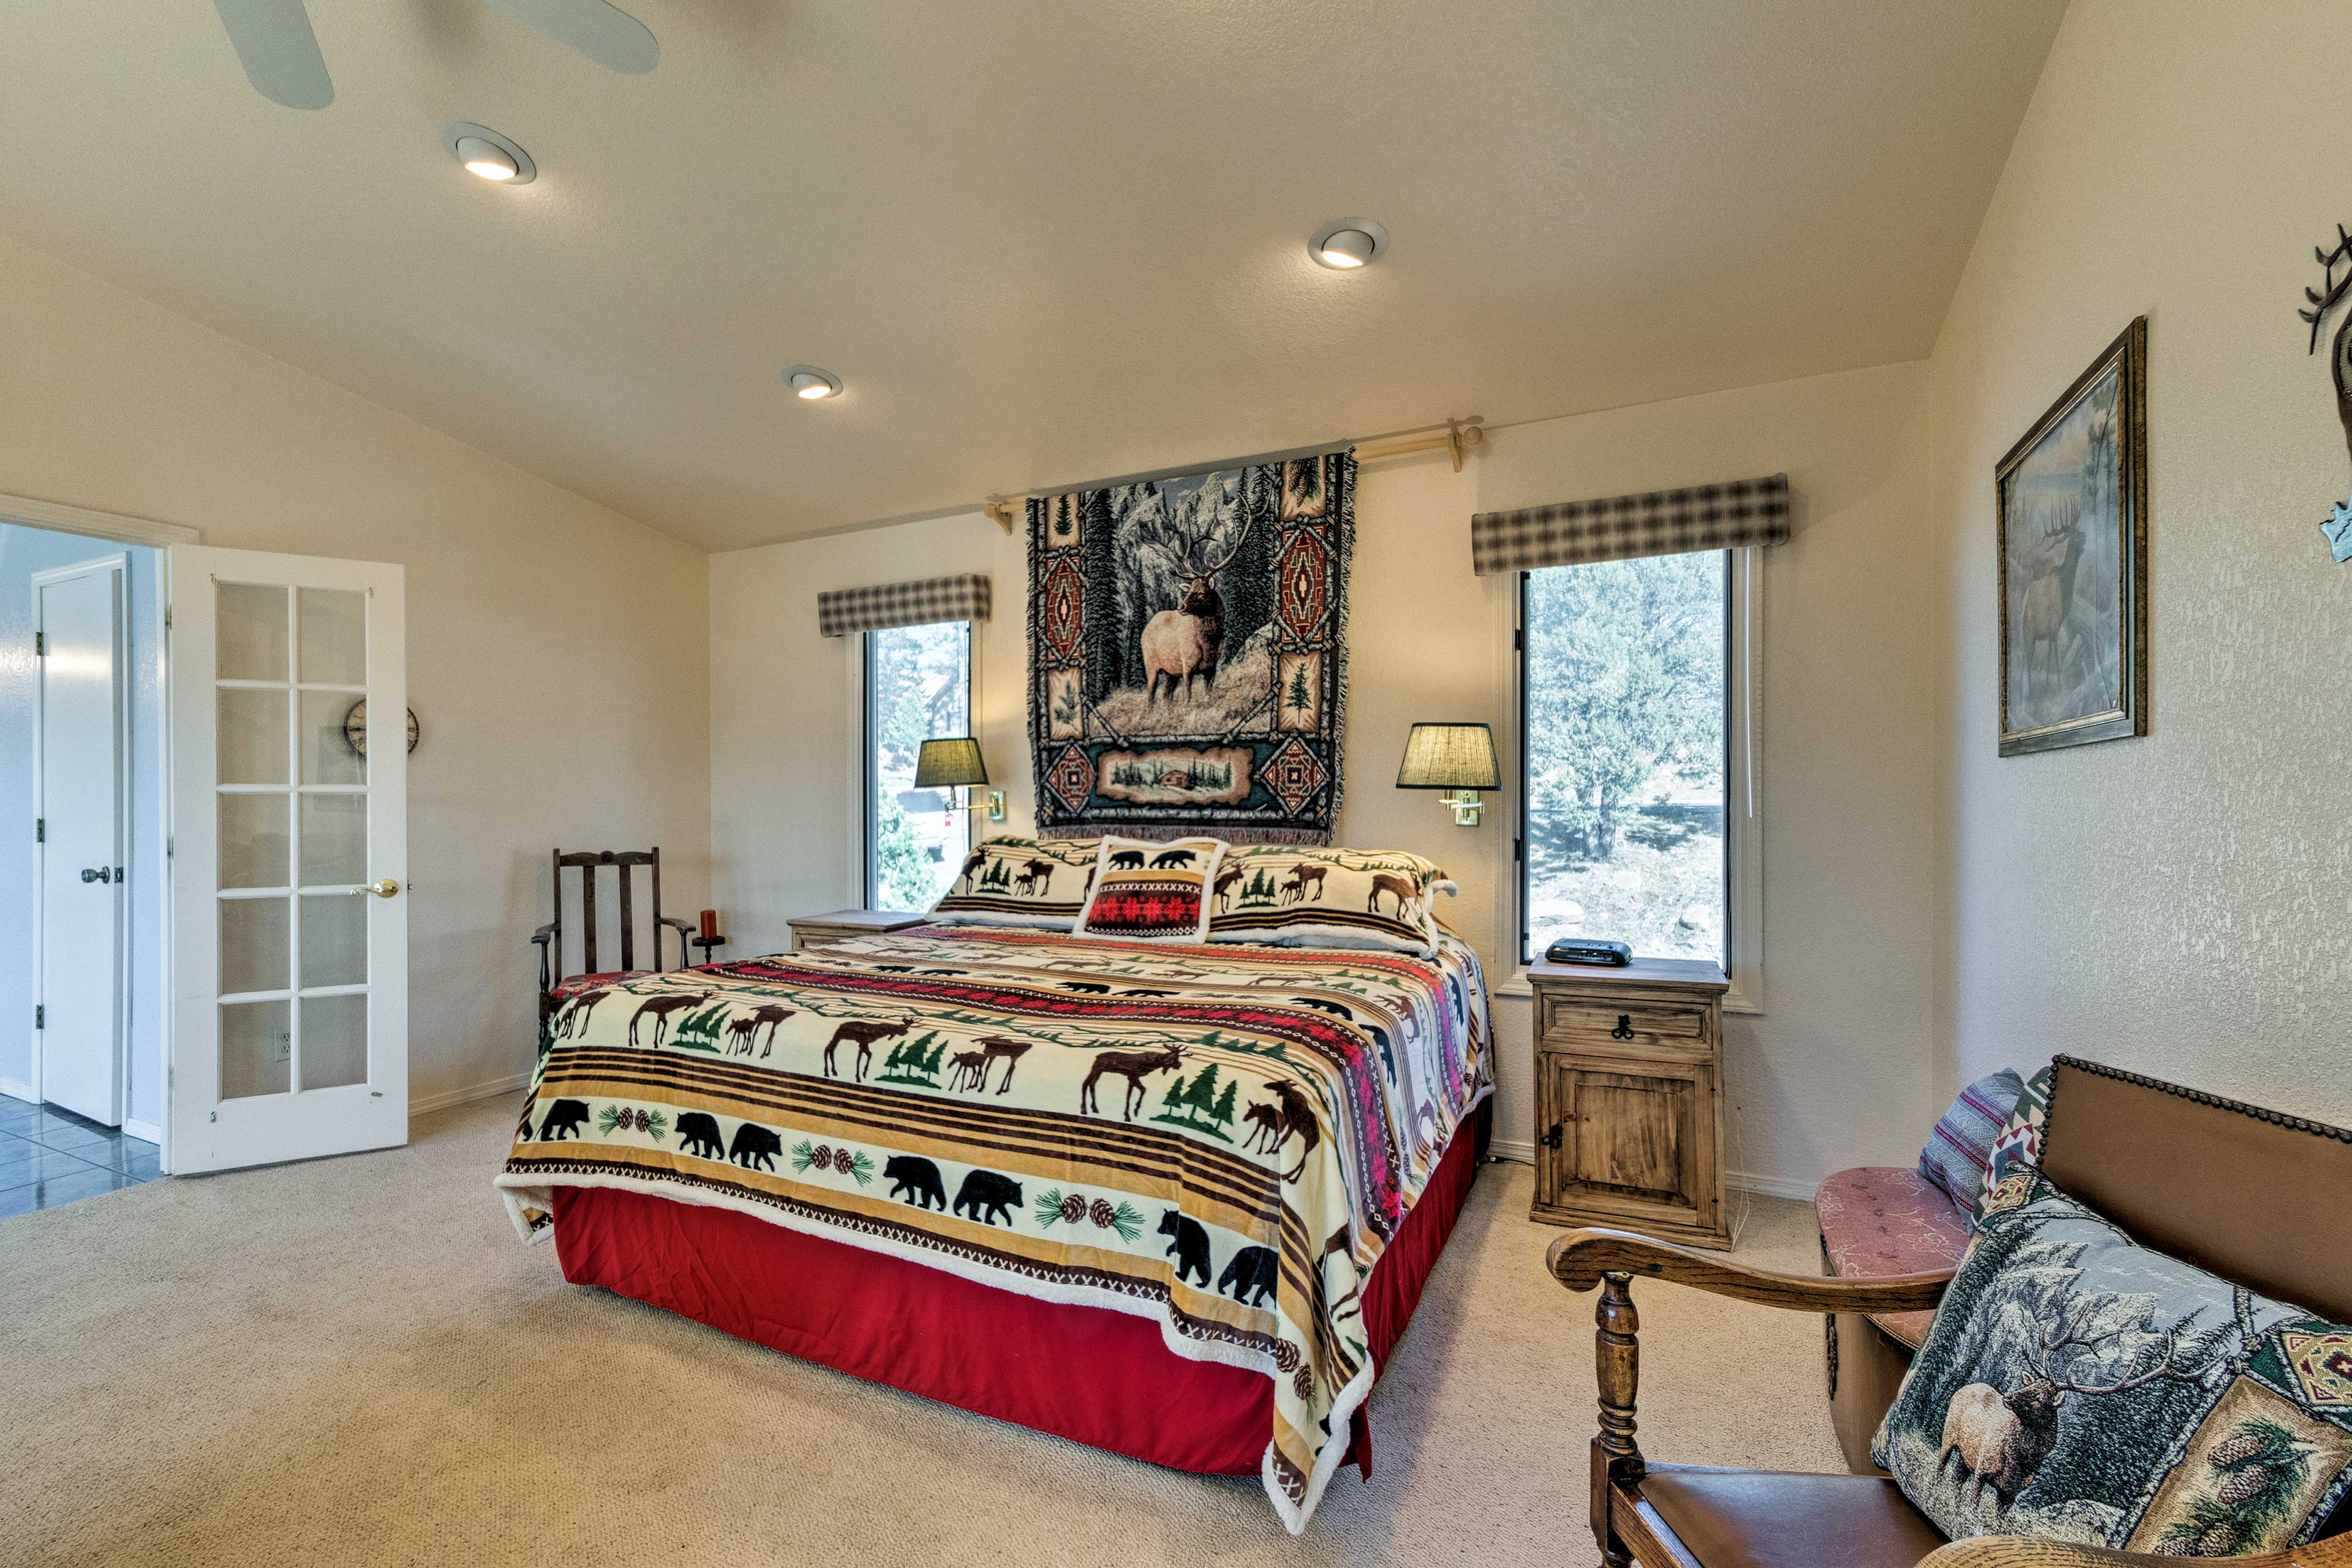 Bright and spacious, the upscale master suite awaits!